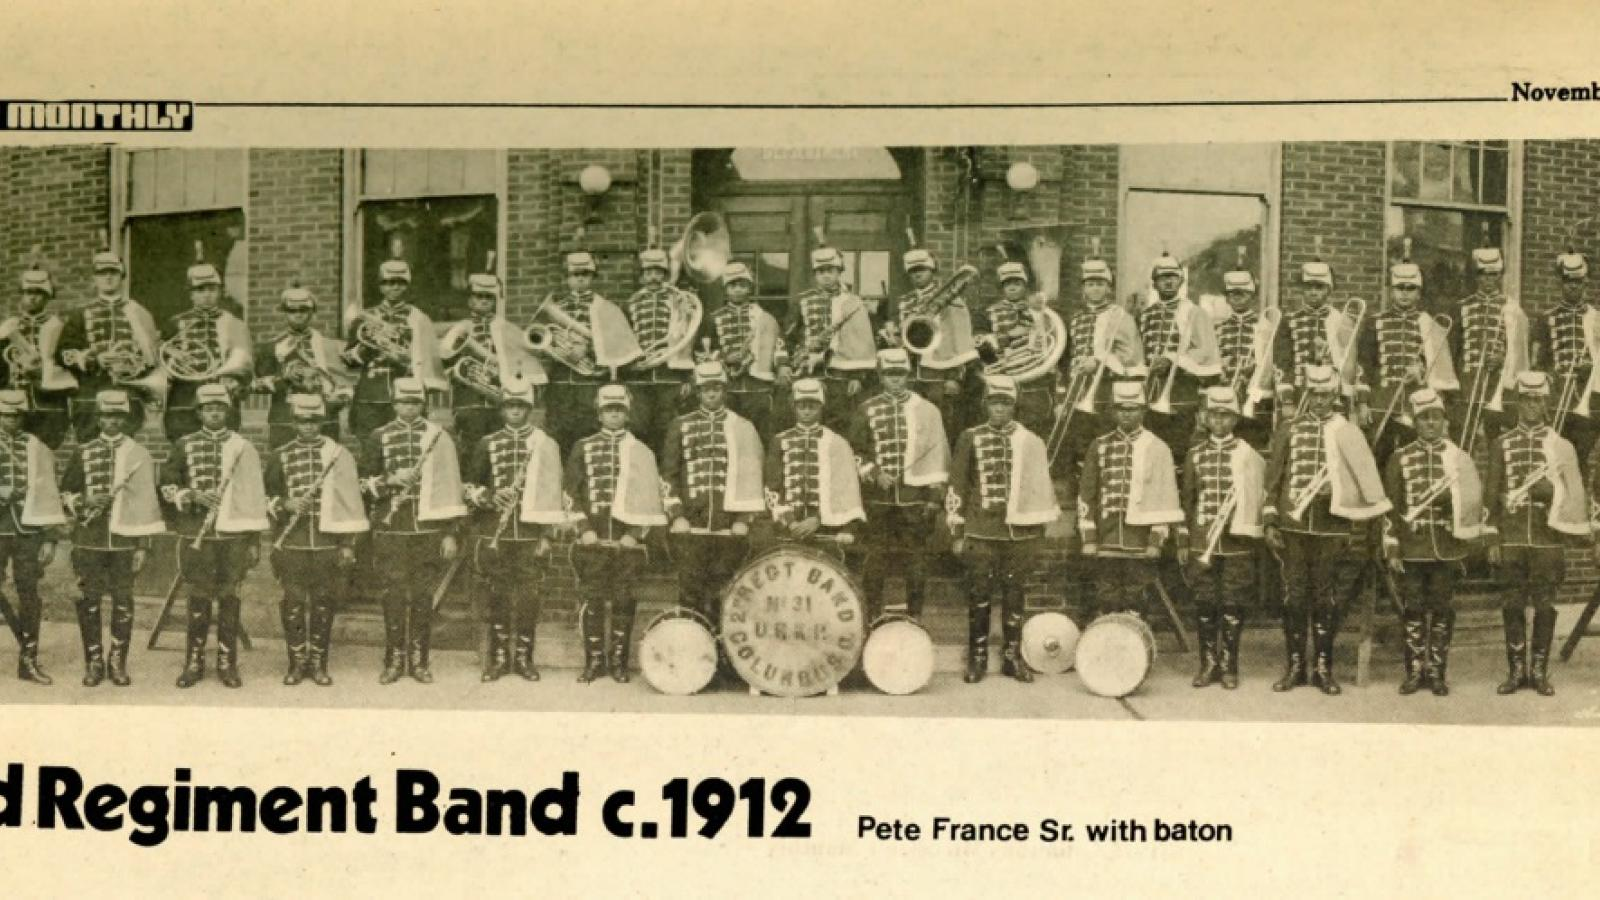 The Second Regiment Marching Band. Columbus, Ohio, 1912.